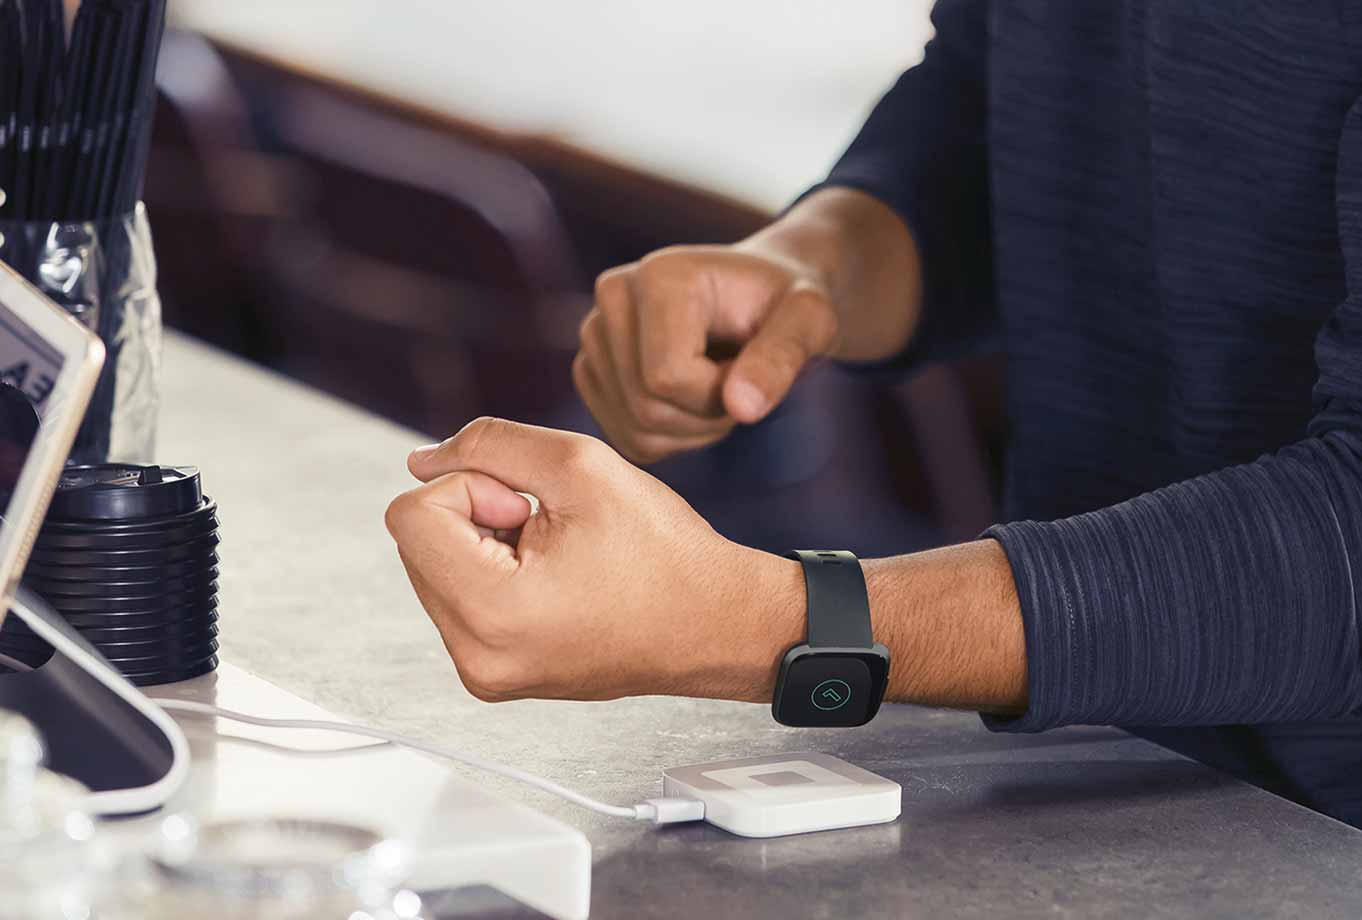 Aman wearing a black Fitbit watch is paying in a coffee shop using the watch and a tap device.